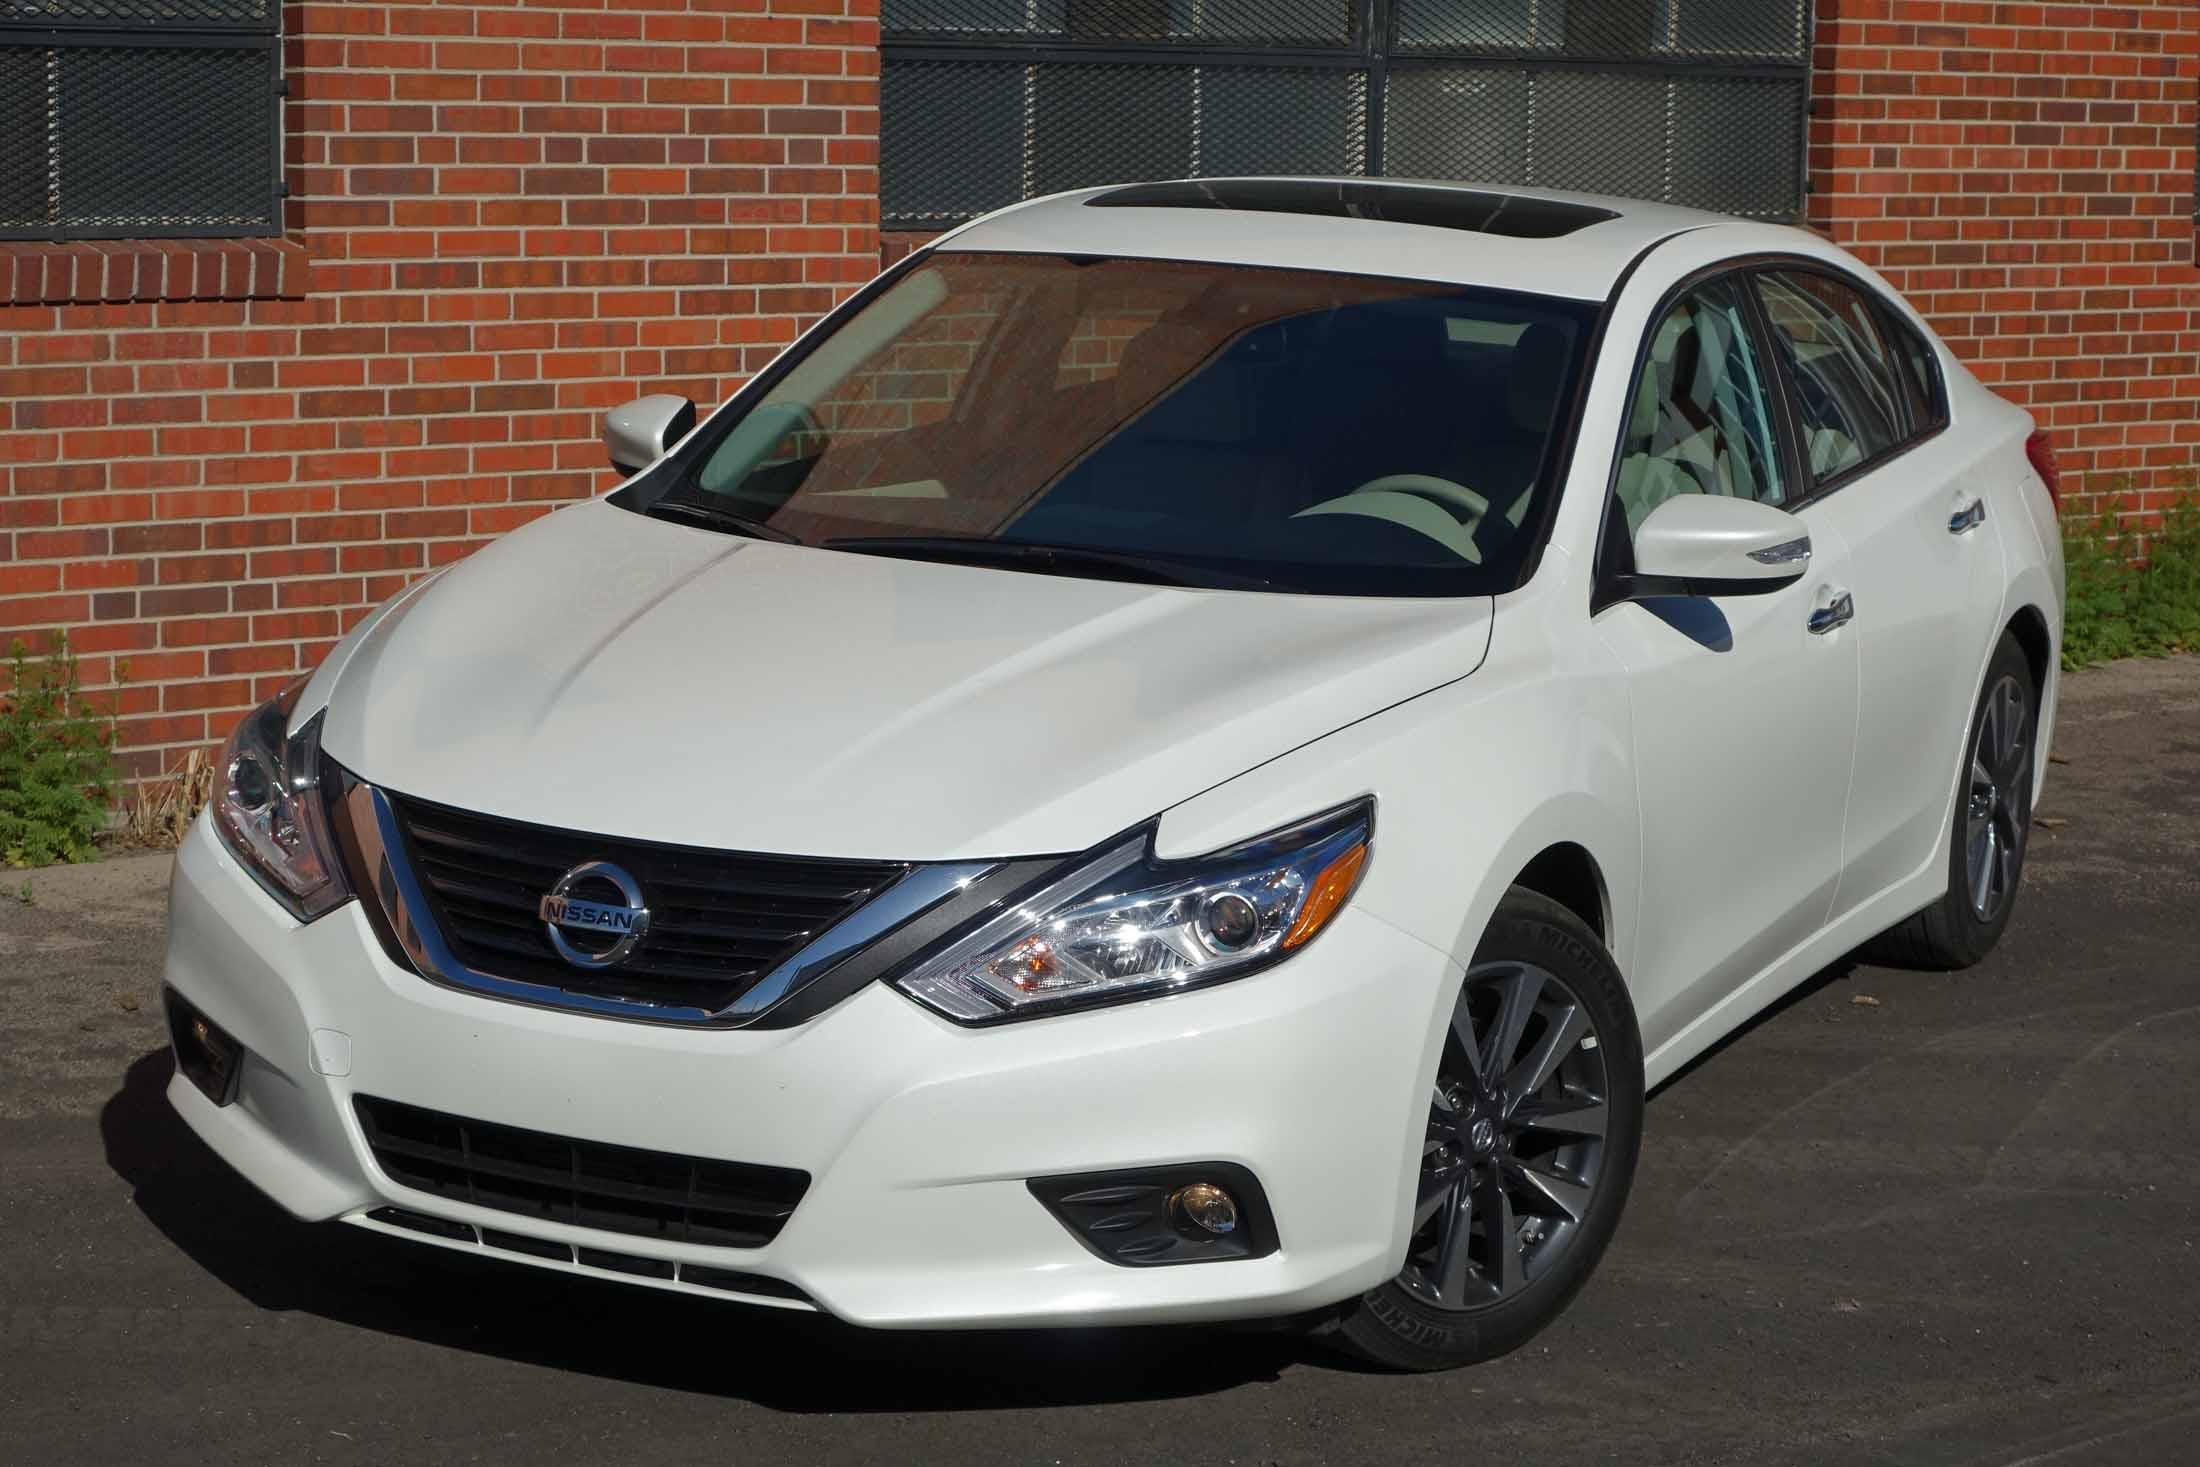 2016 nissan altima 2 5 sl gas mileage reviewNissan Altima Fuel Type #8